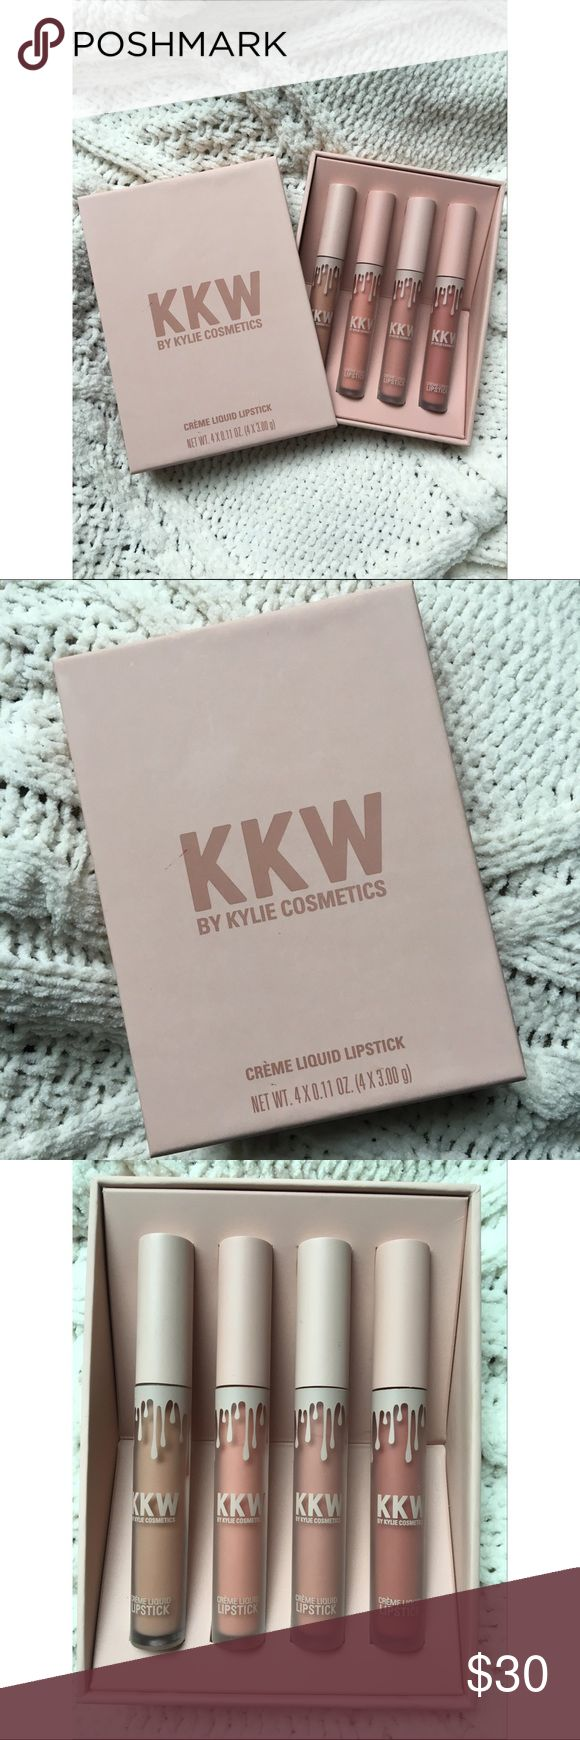 KKW by Kylie Cosmetics 4 crème liquid lipsticks in nude tones. Only swatched. I just never seem to wear these! Beautiful lipsticks purchased from Kylie's website. Feel free to ask any questions 💗 Kylie Cosmetics Makeup Lipstick